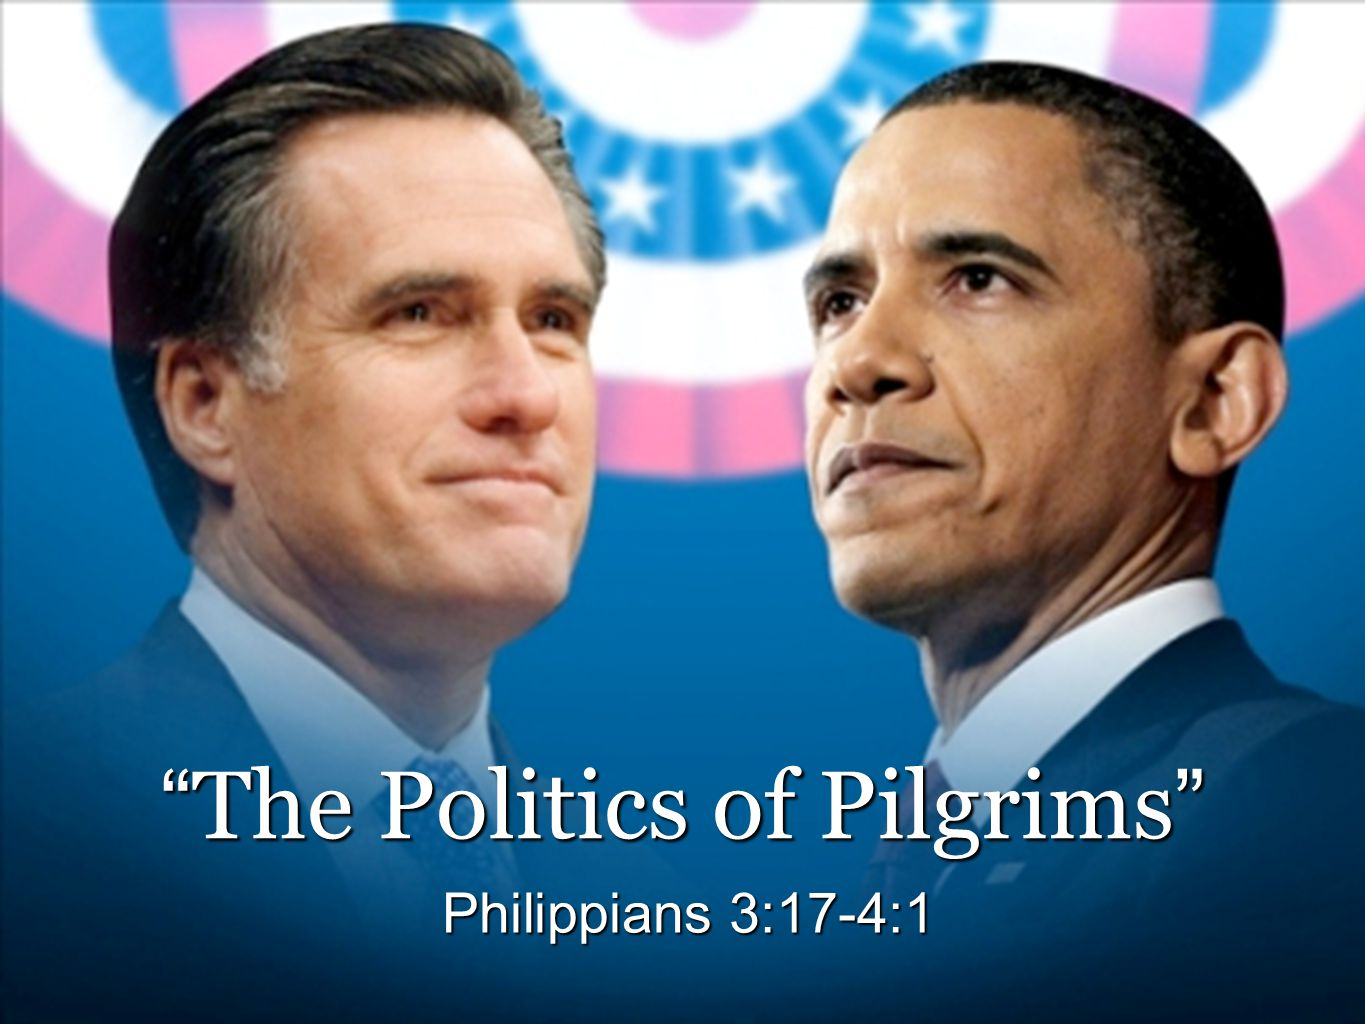 The Politics of Pilgrims Revelation 11:15 (NKJV) 15 Then the seventh angel sounded: And there were loud voices in heaven, saying, The kingdoms of this world have become the kingdoms of our Lord and of His Christ, and He shall reign forever and ever!